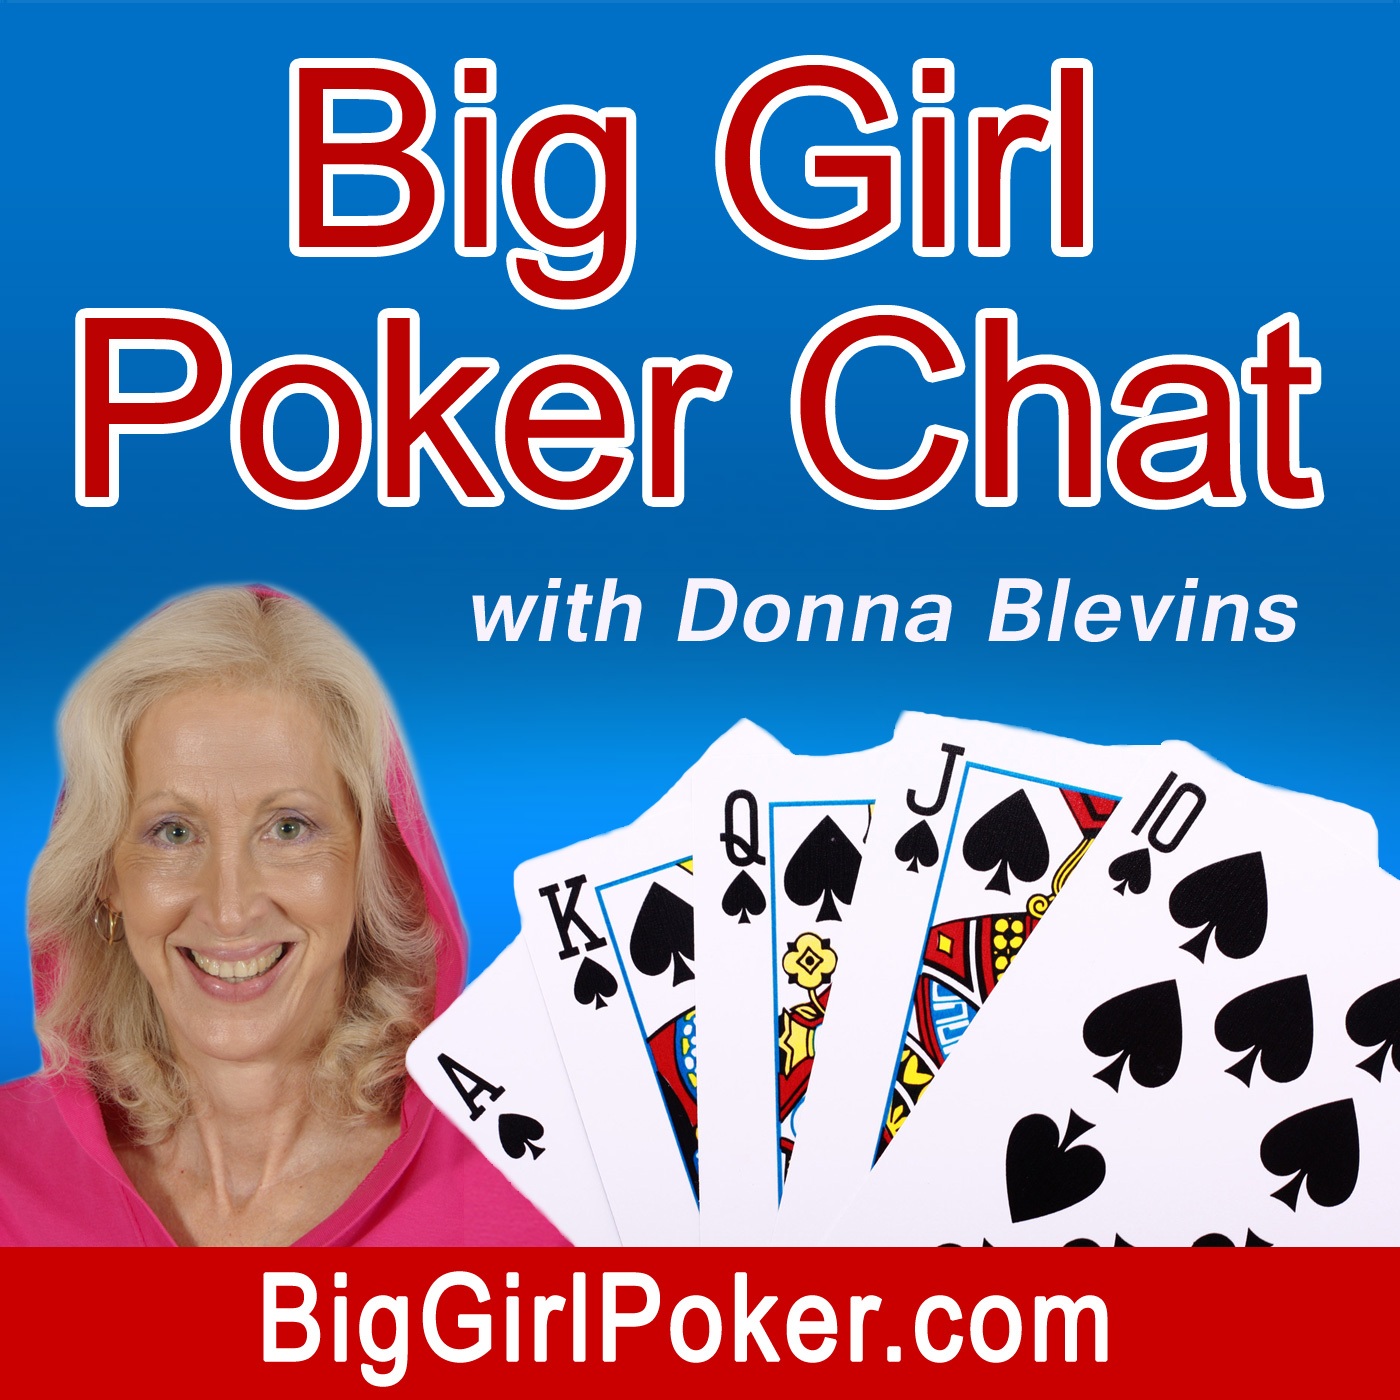 Big Girl Poker Chat